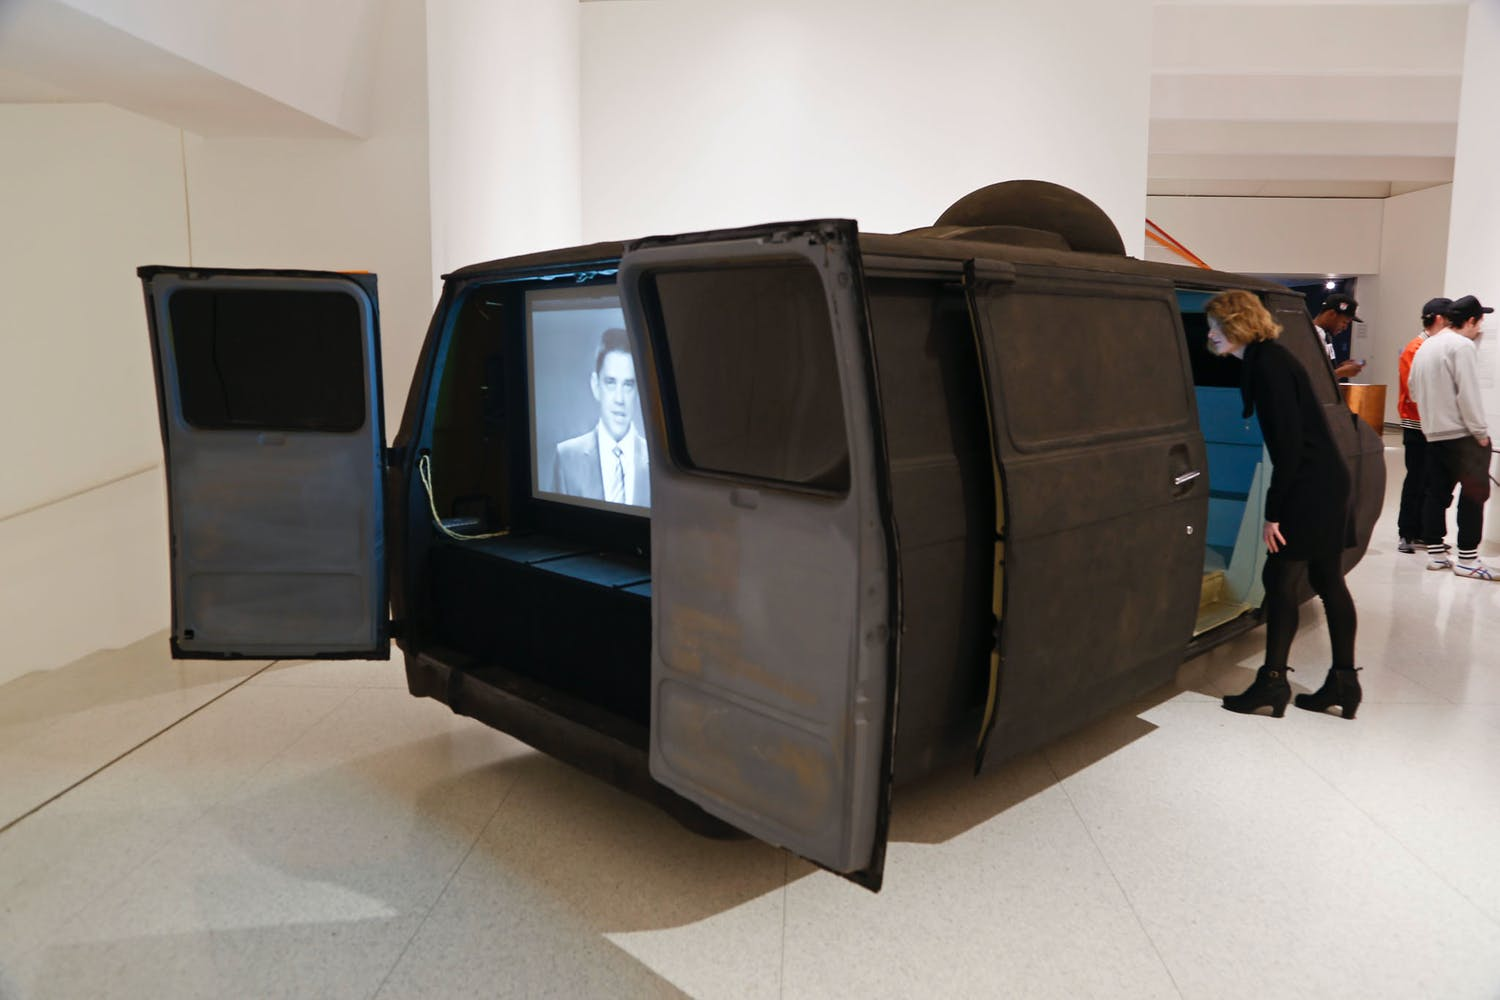 View of the exhibition Hippie Modernism: The Struggle for Utopia, 2015; Ant Farm, Media Van v.08, 2008